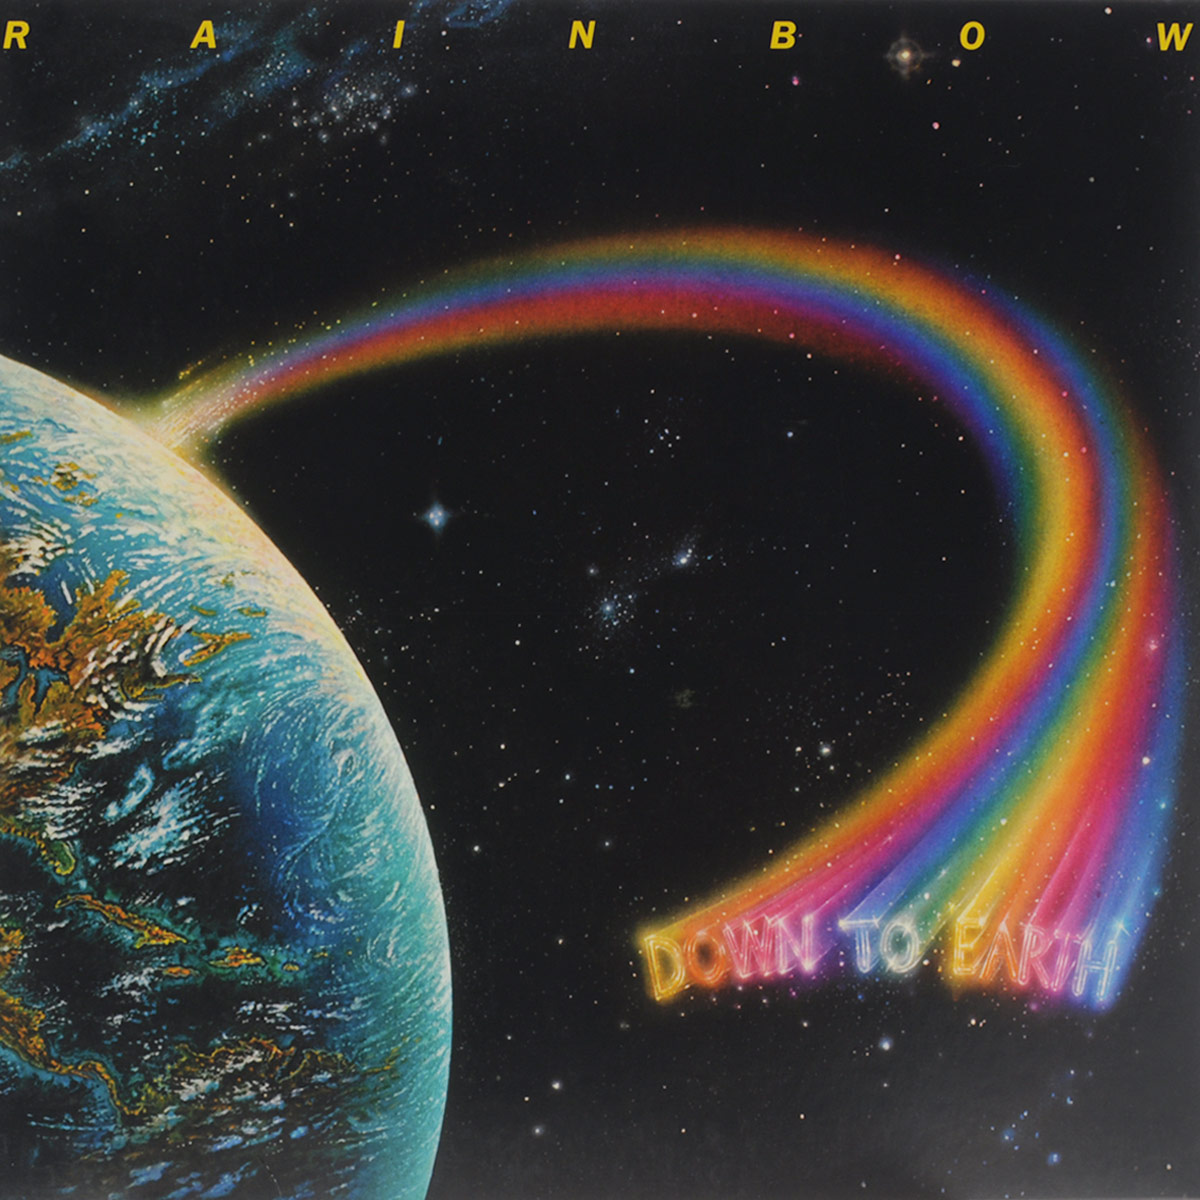 Rainbow Rainbow. Down To Earth (LP) roogo 1 rainbow gnome l031 diy r001